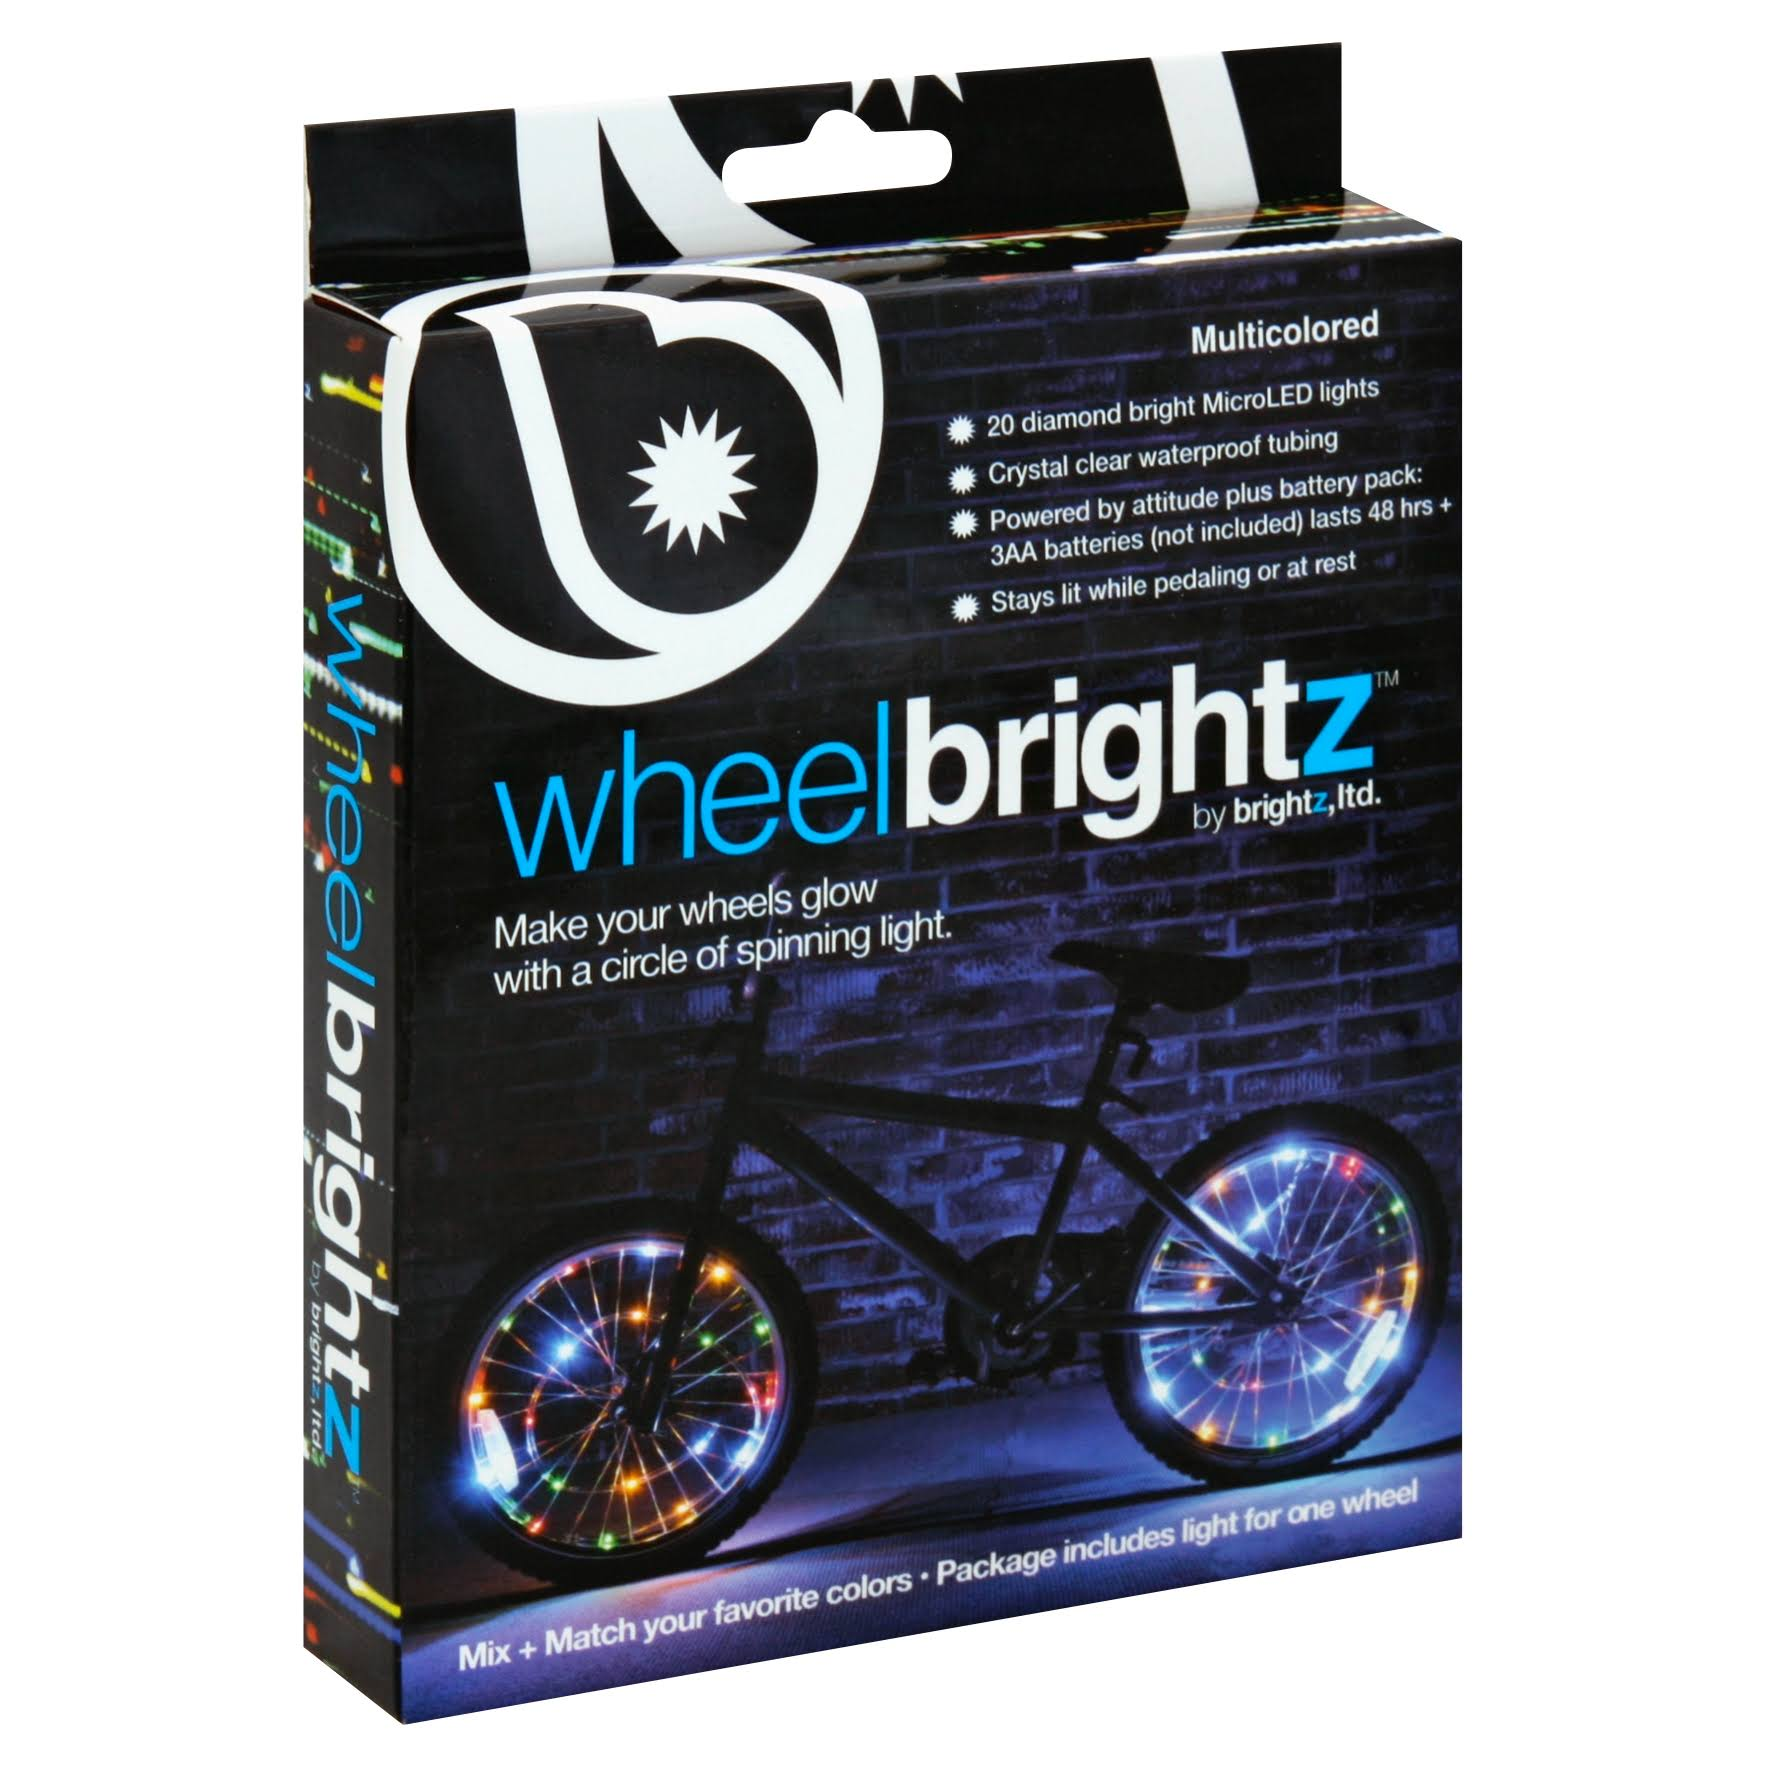 Wheel Brightz Lightweight LED Bicycle Safety Light - Multicolored